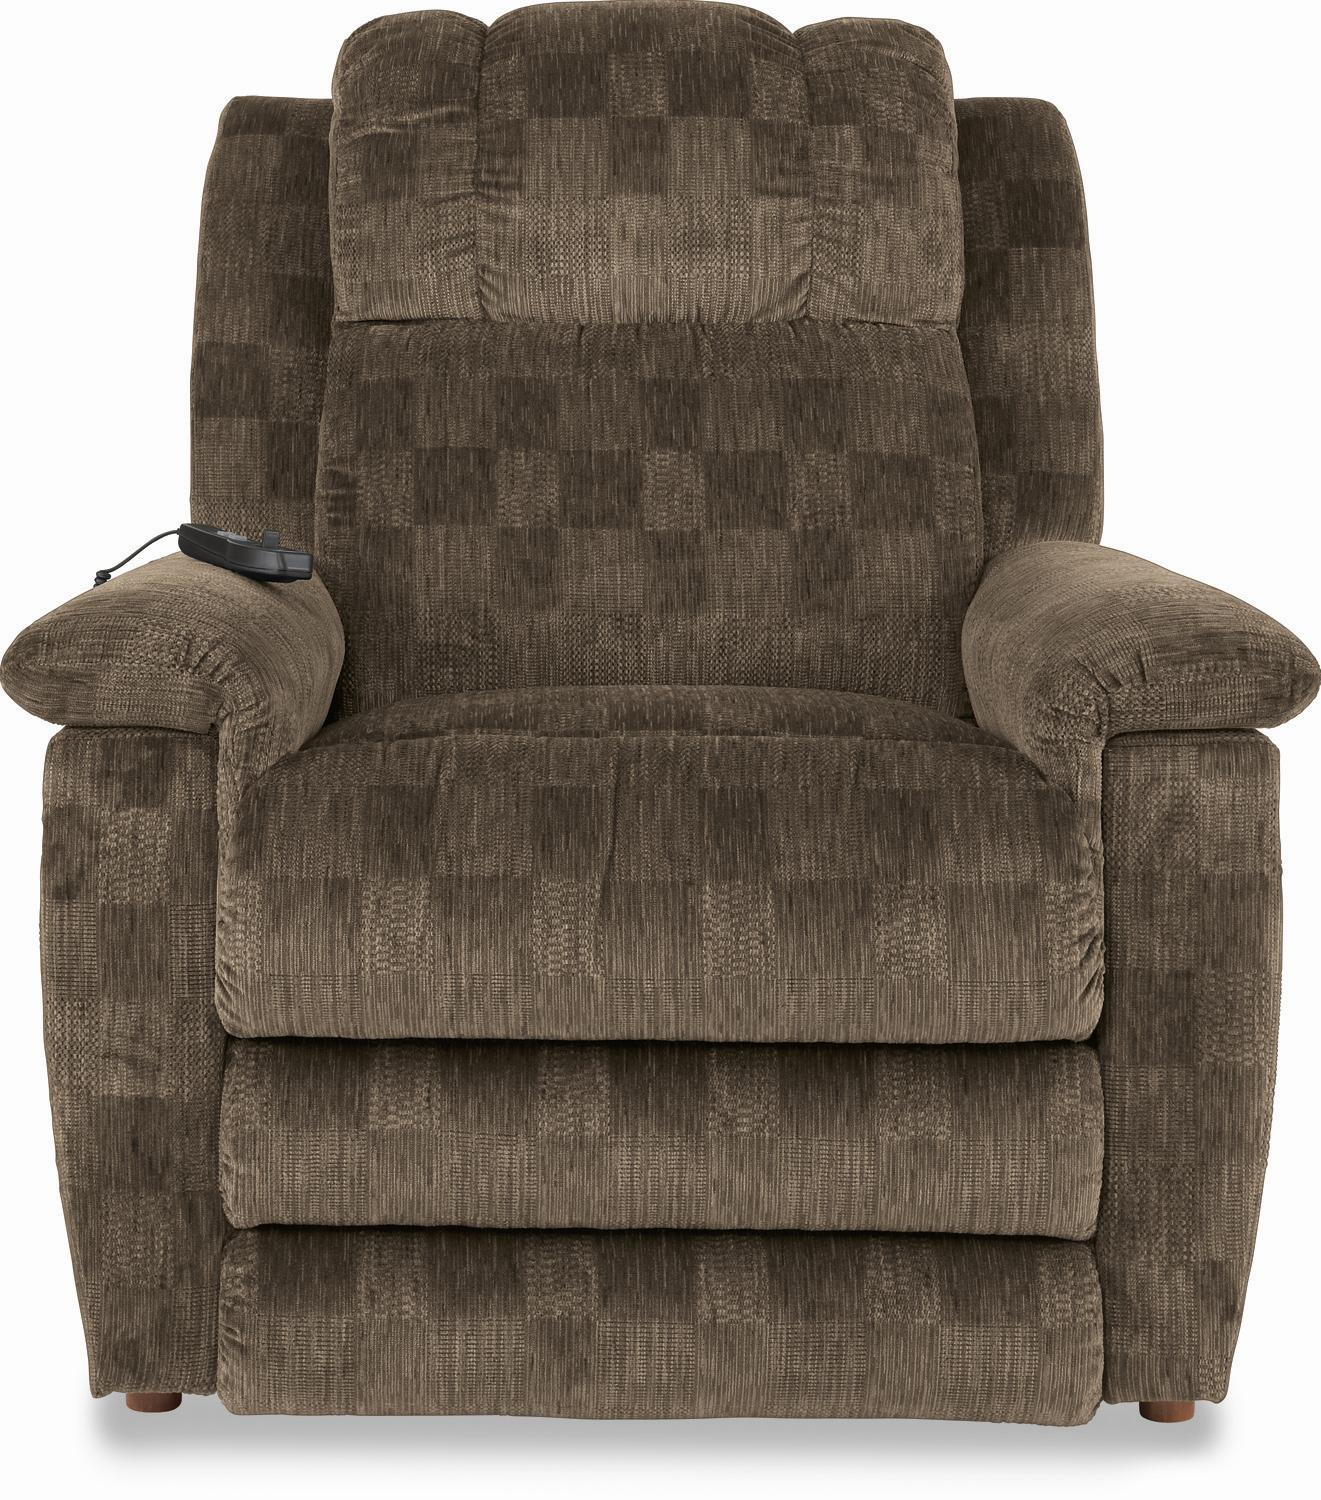 comfortable power lift recliners in brown for home furniture ideas